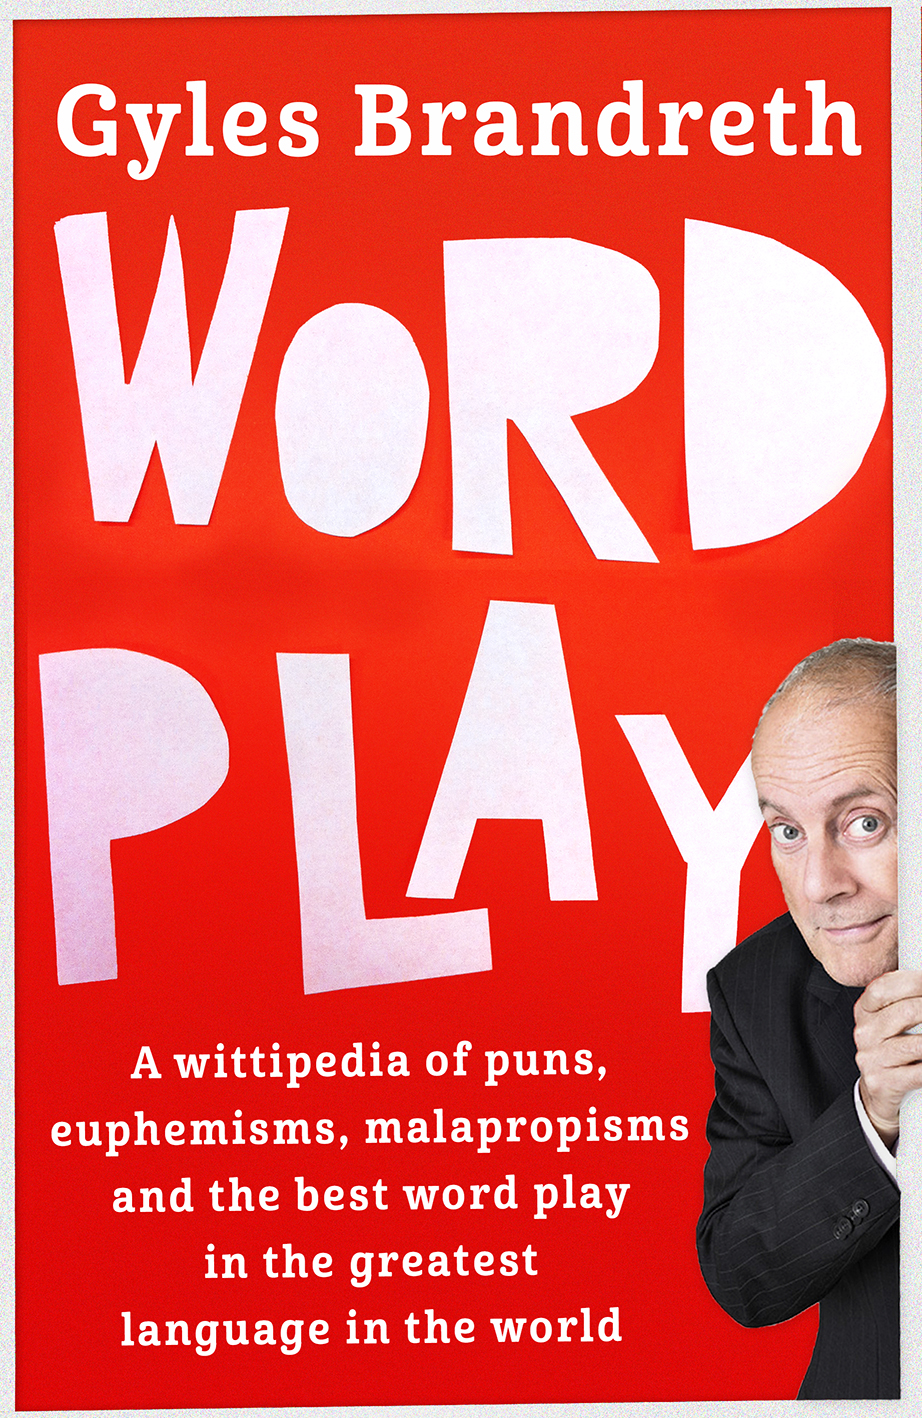 Northern Aldborough Festival: Gyles Brandreth - Word Play